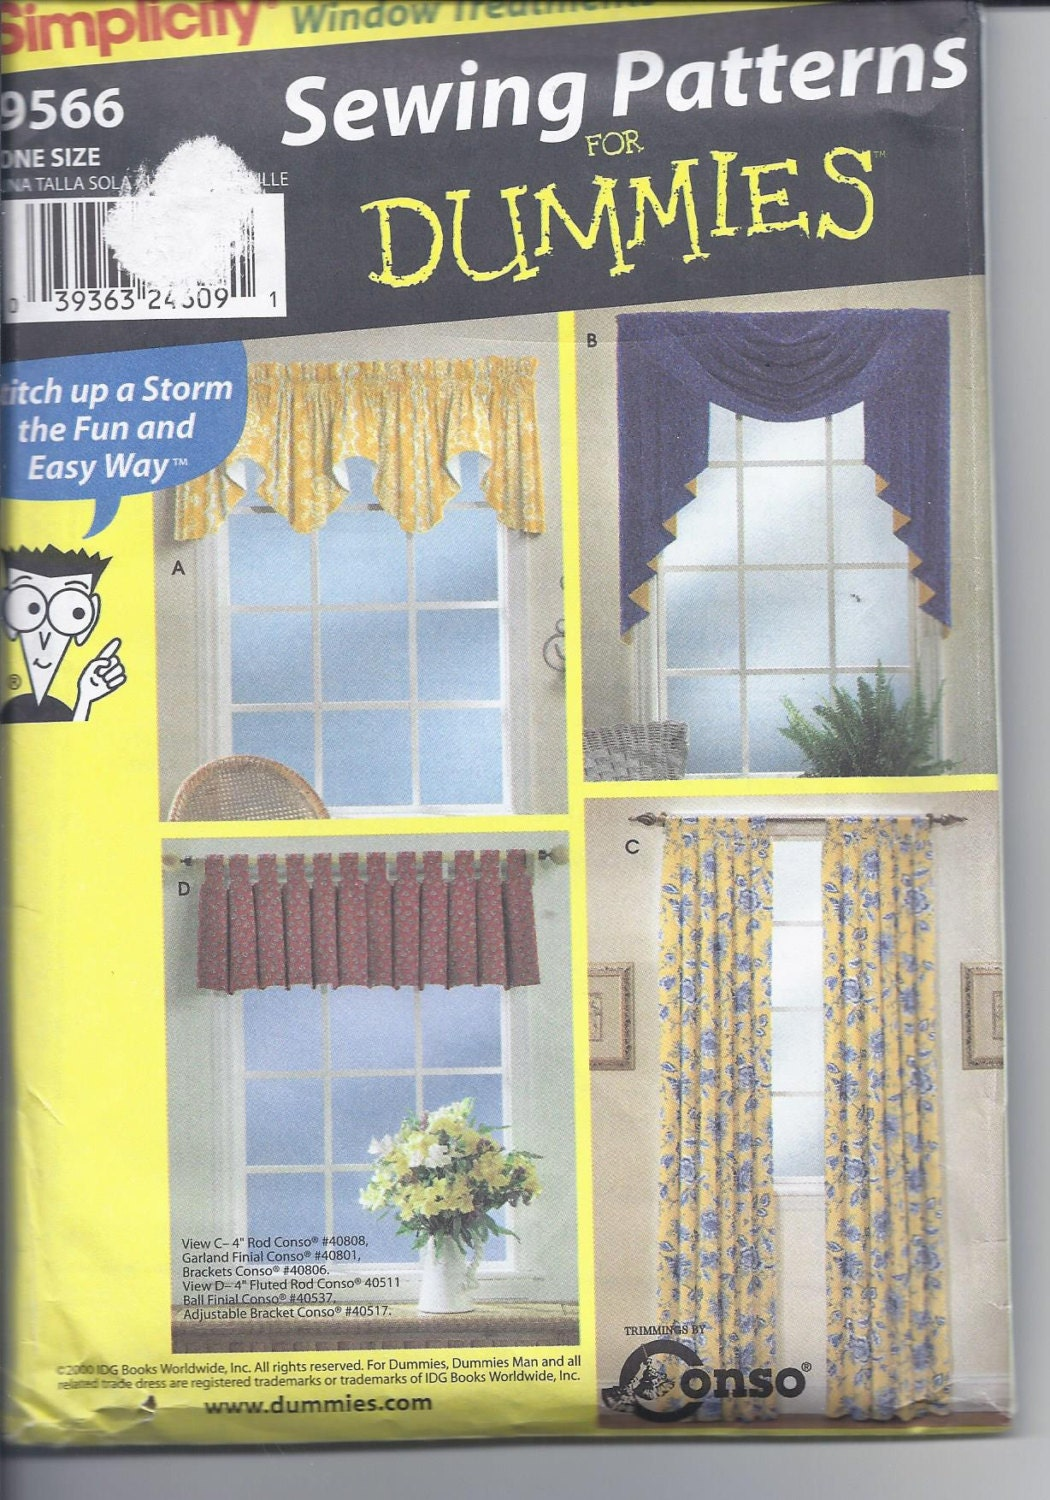 Simplicity Pattern 9566 Sewing For Dummies Window